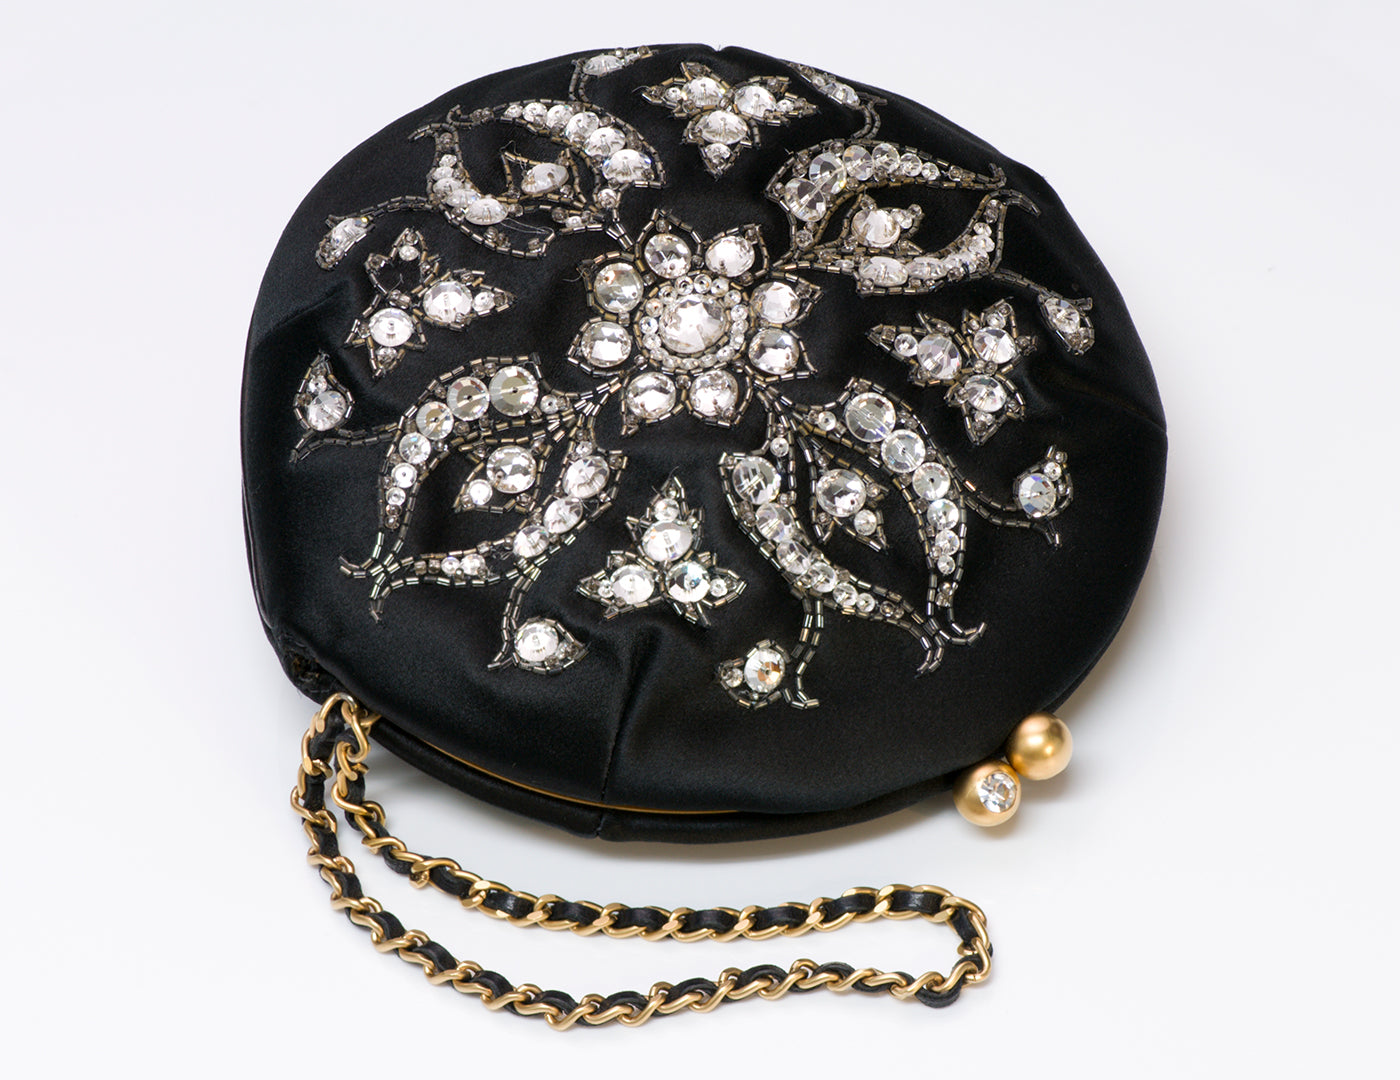 chanel-satin-beaded-crystal-round-clutch-bag